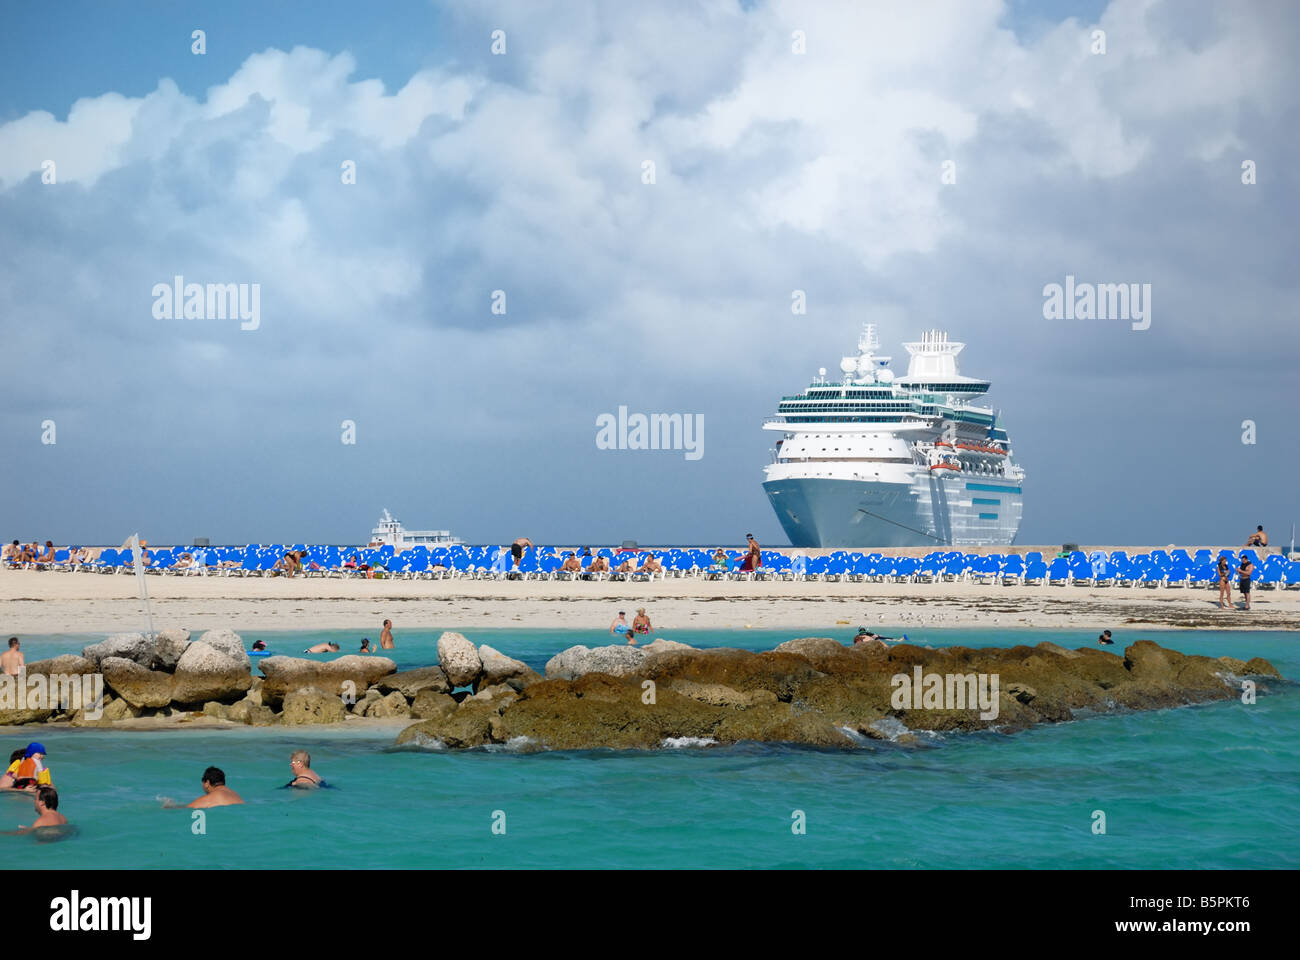 The Royal Caribbean cruise ship Majesty of the Seas can be seen in the distance from the beach at Little Stirrip - Stock Image